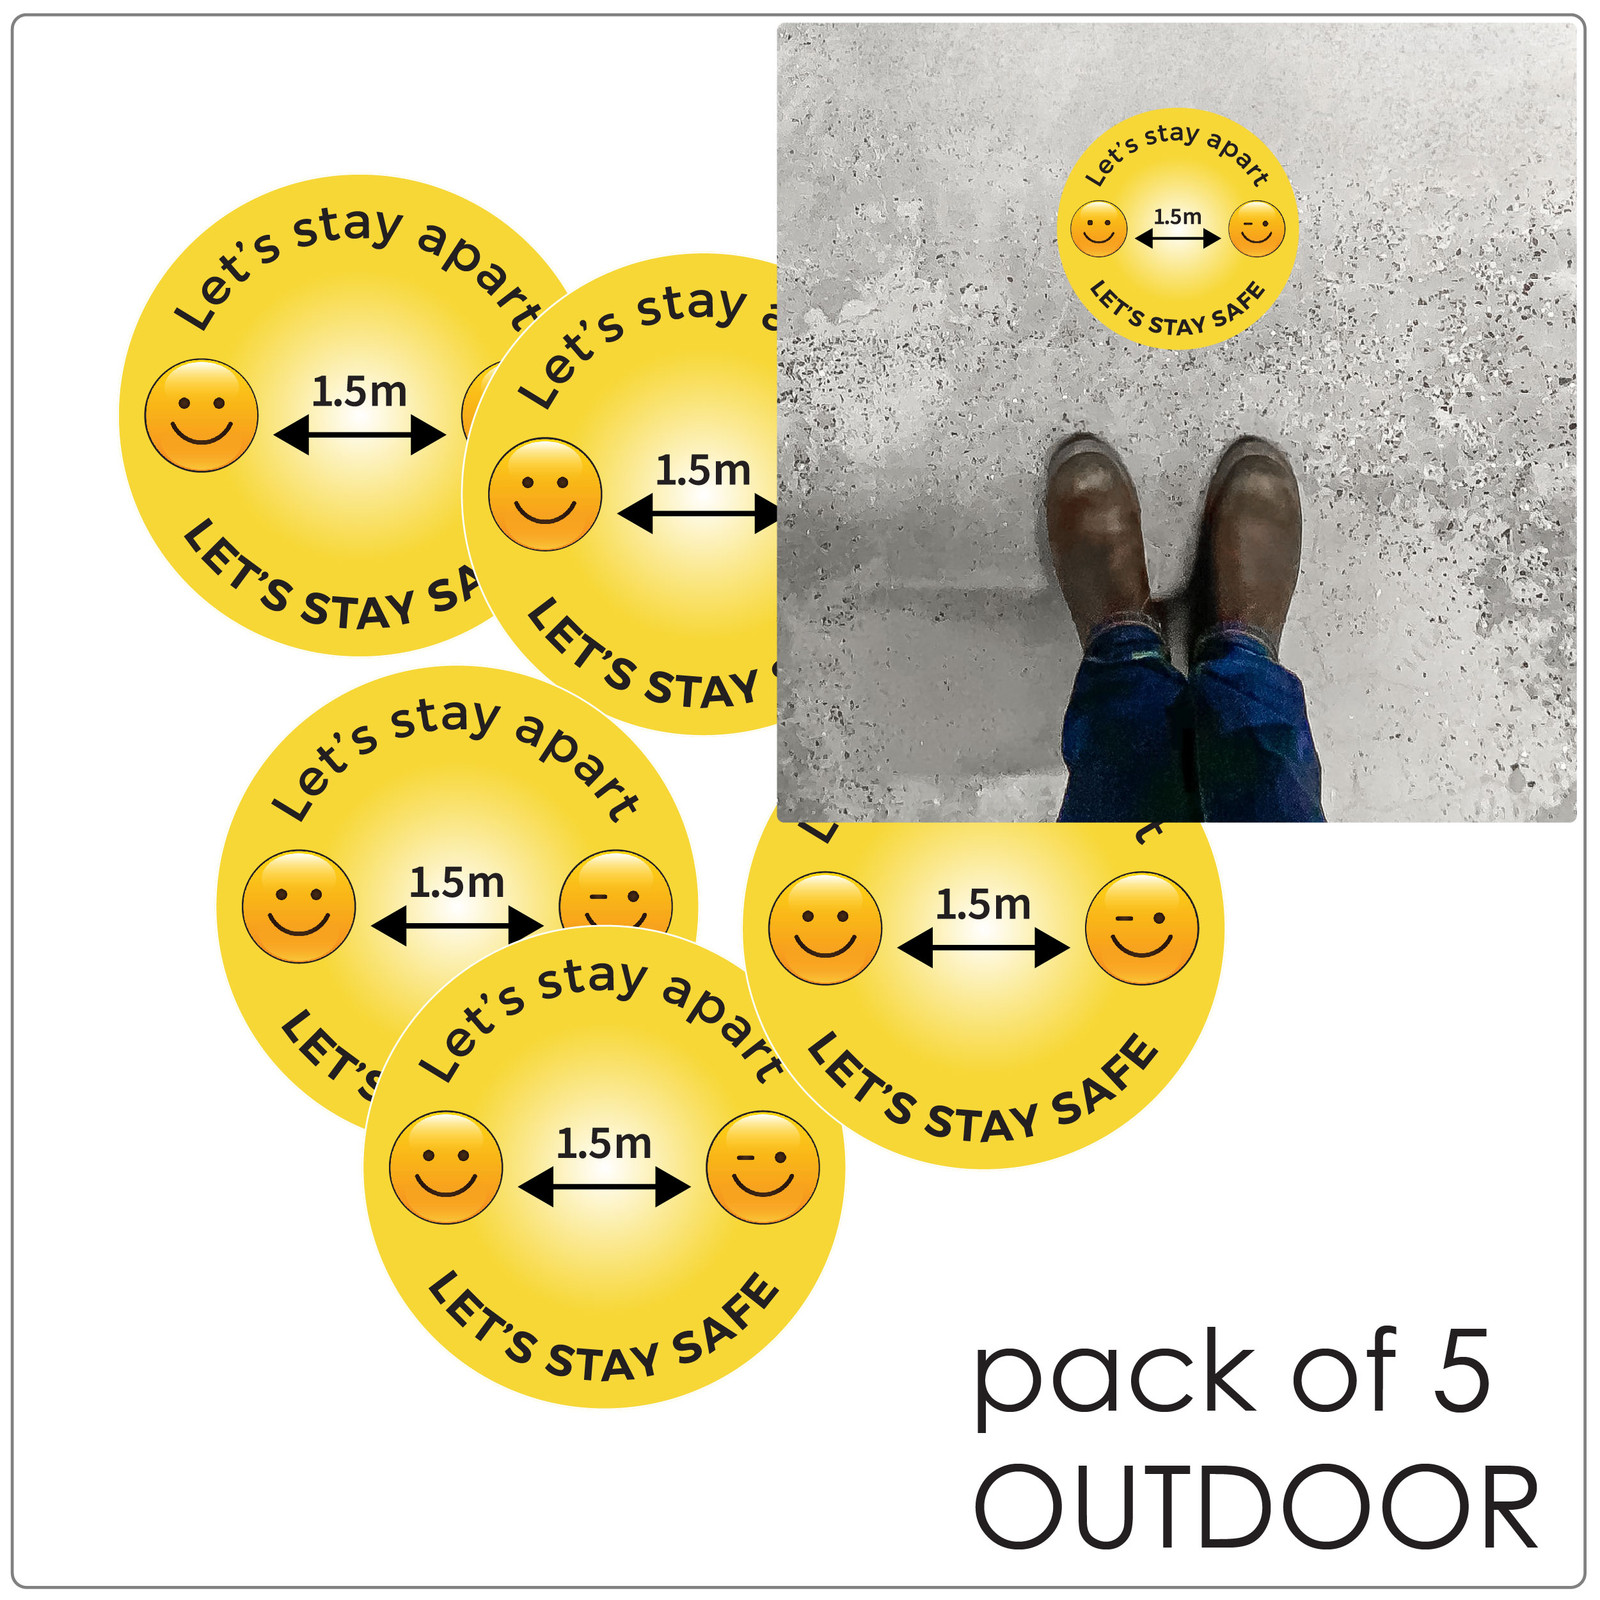 1.5 meter physical distancing floor sticker for outdoors, pack of 5, emoji Self-adhesive Corona floor marker safety floor signs for COVID-19